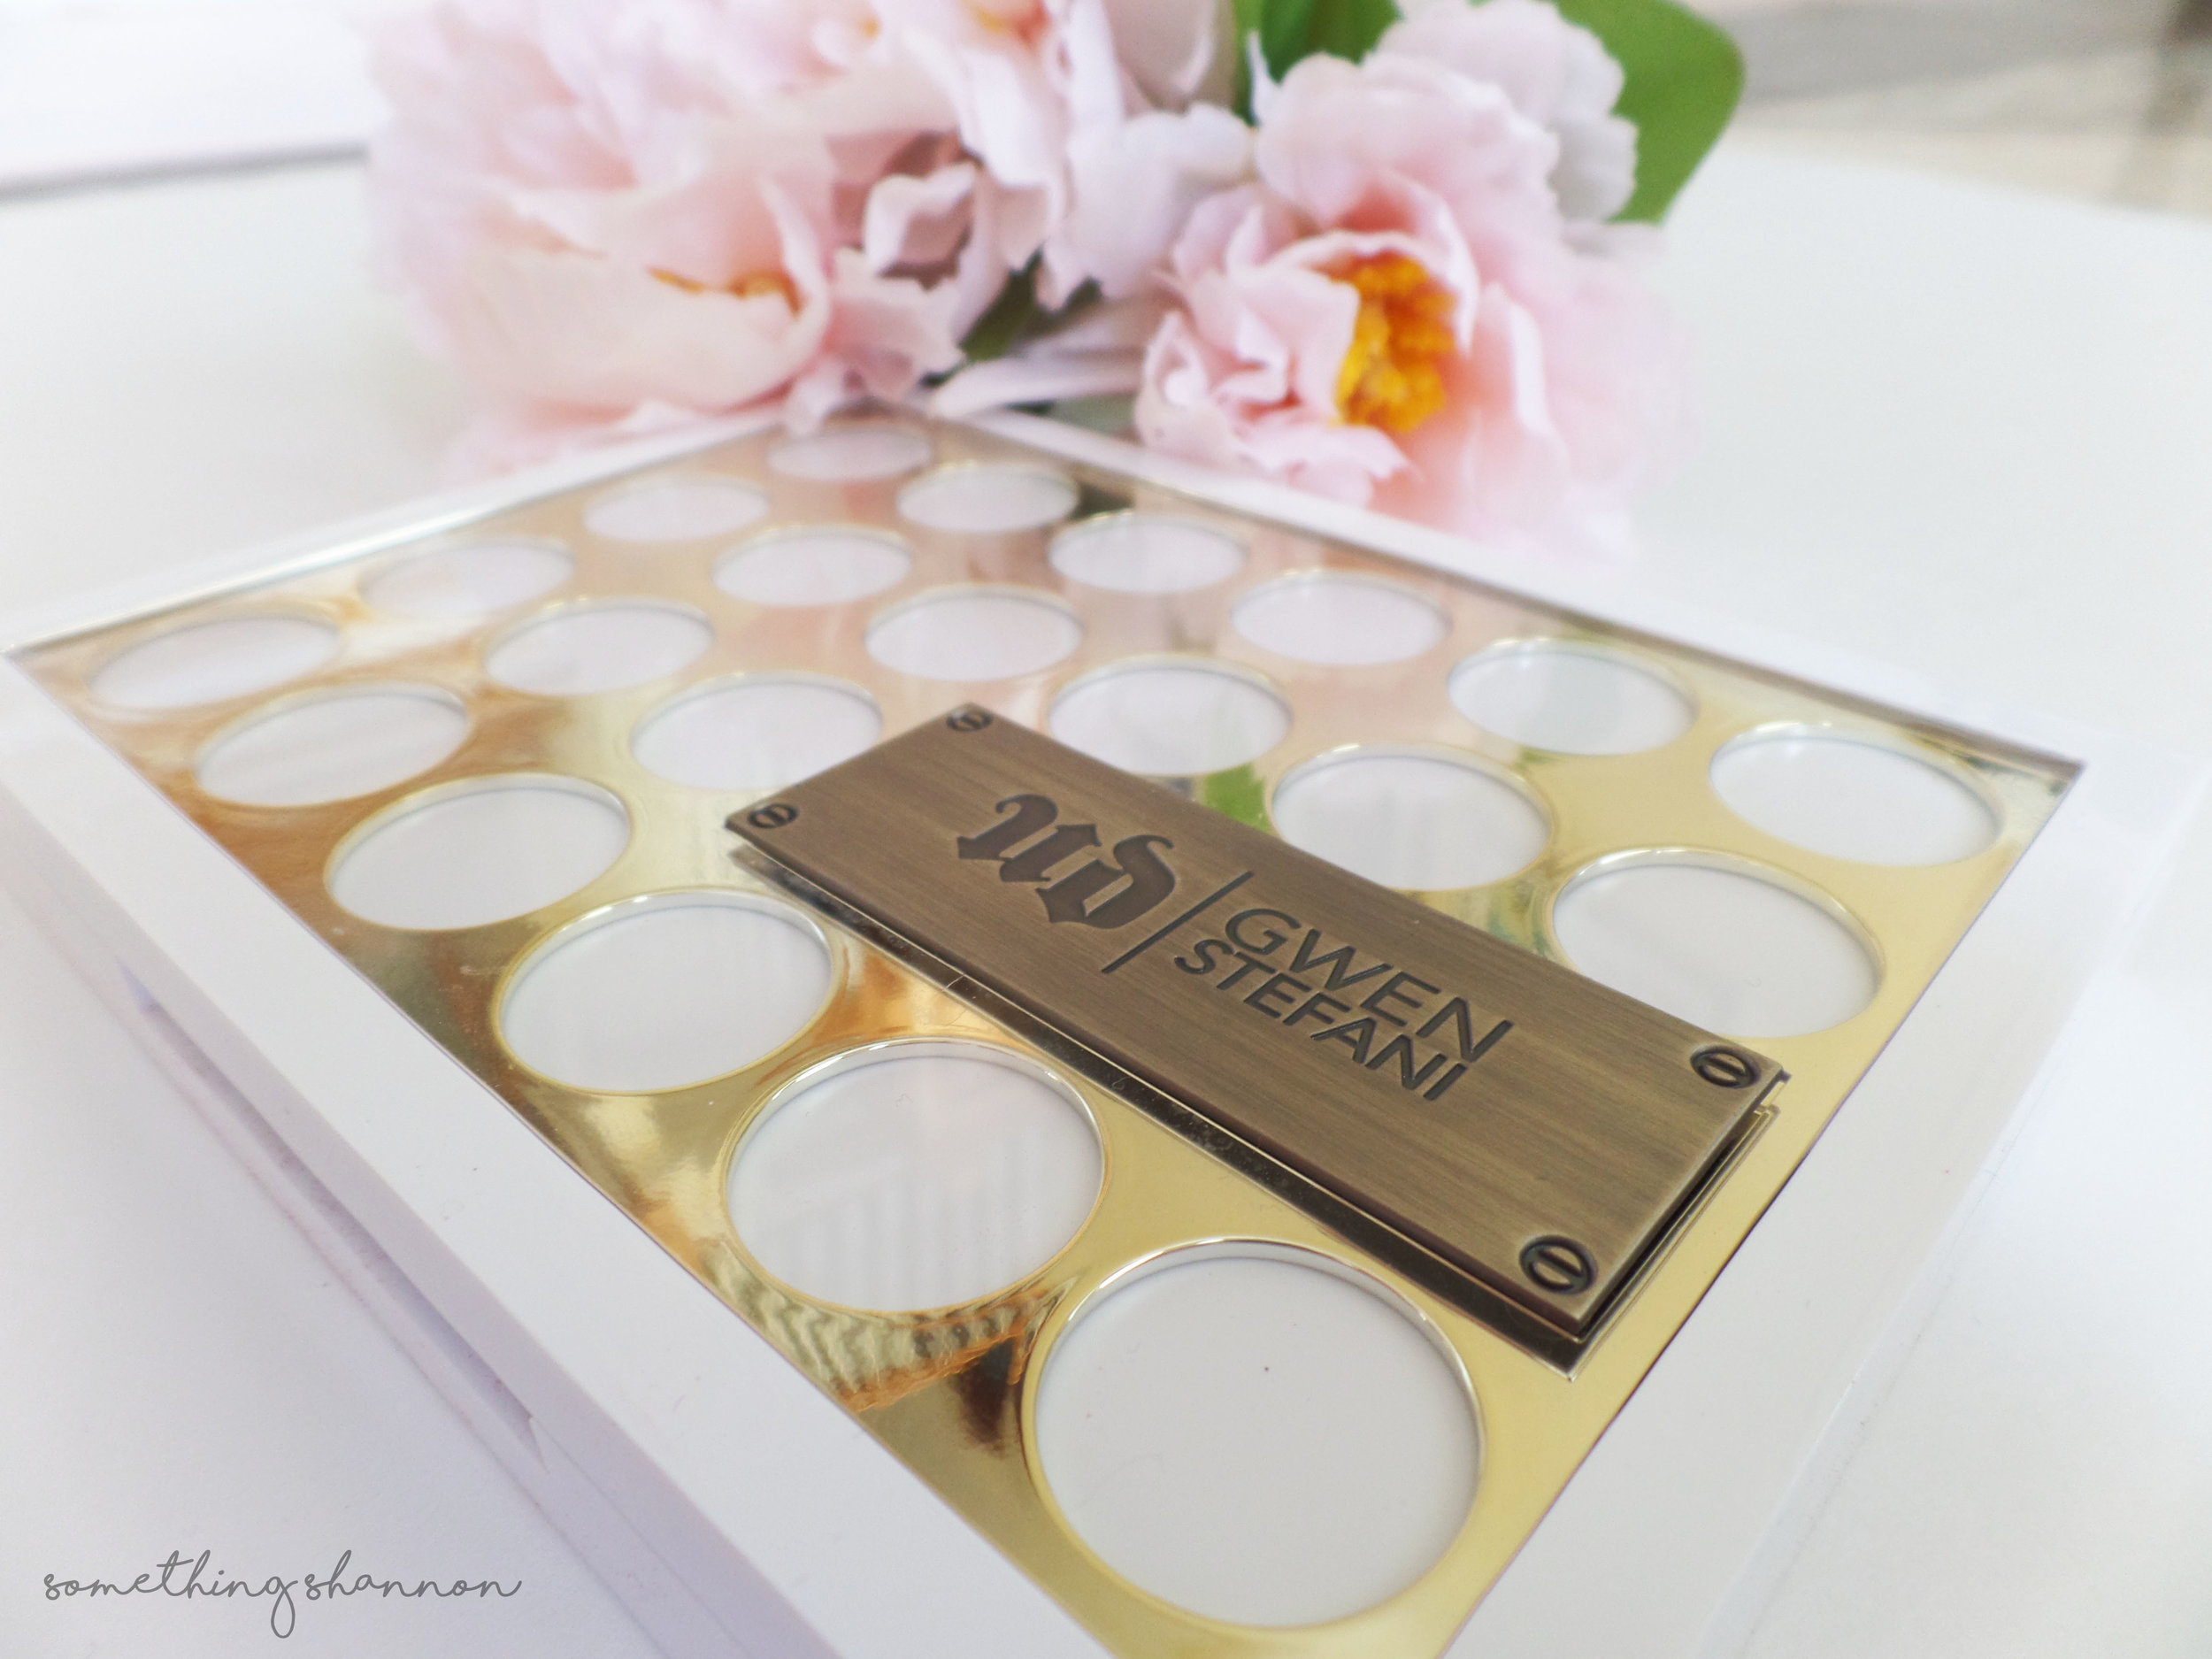 Gwen Stefani Blush Palette Review